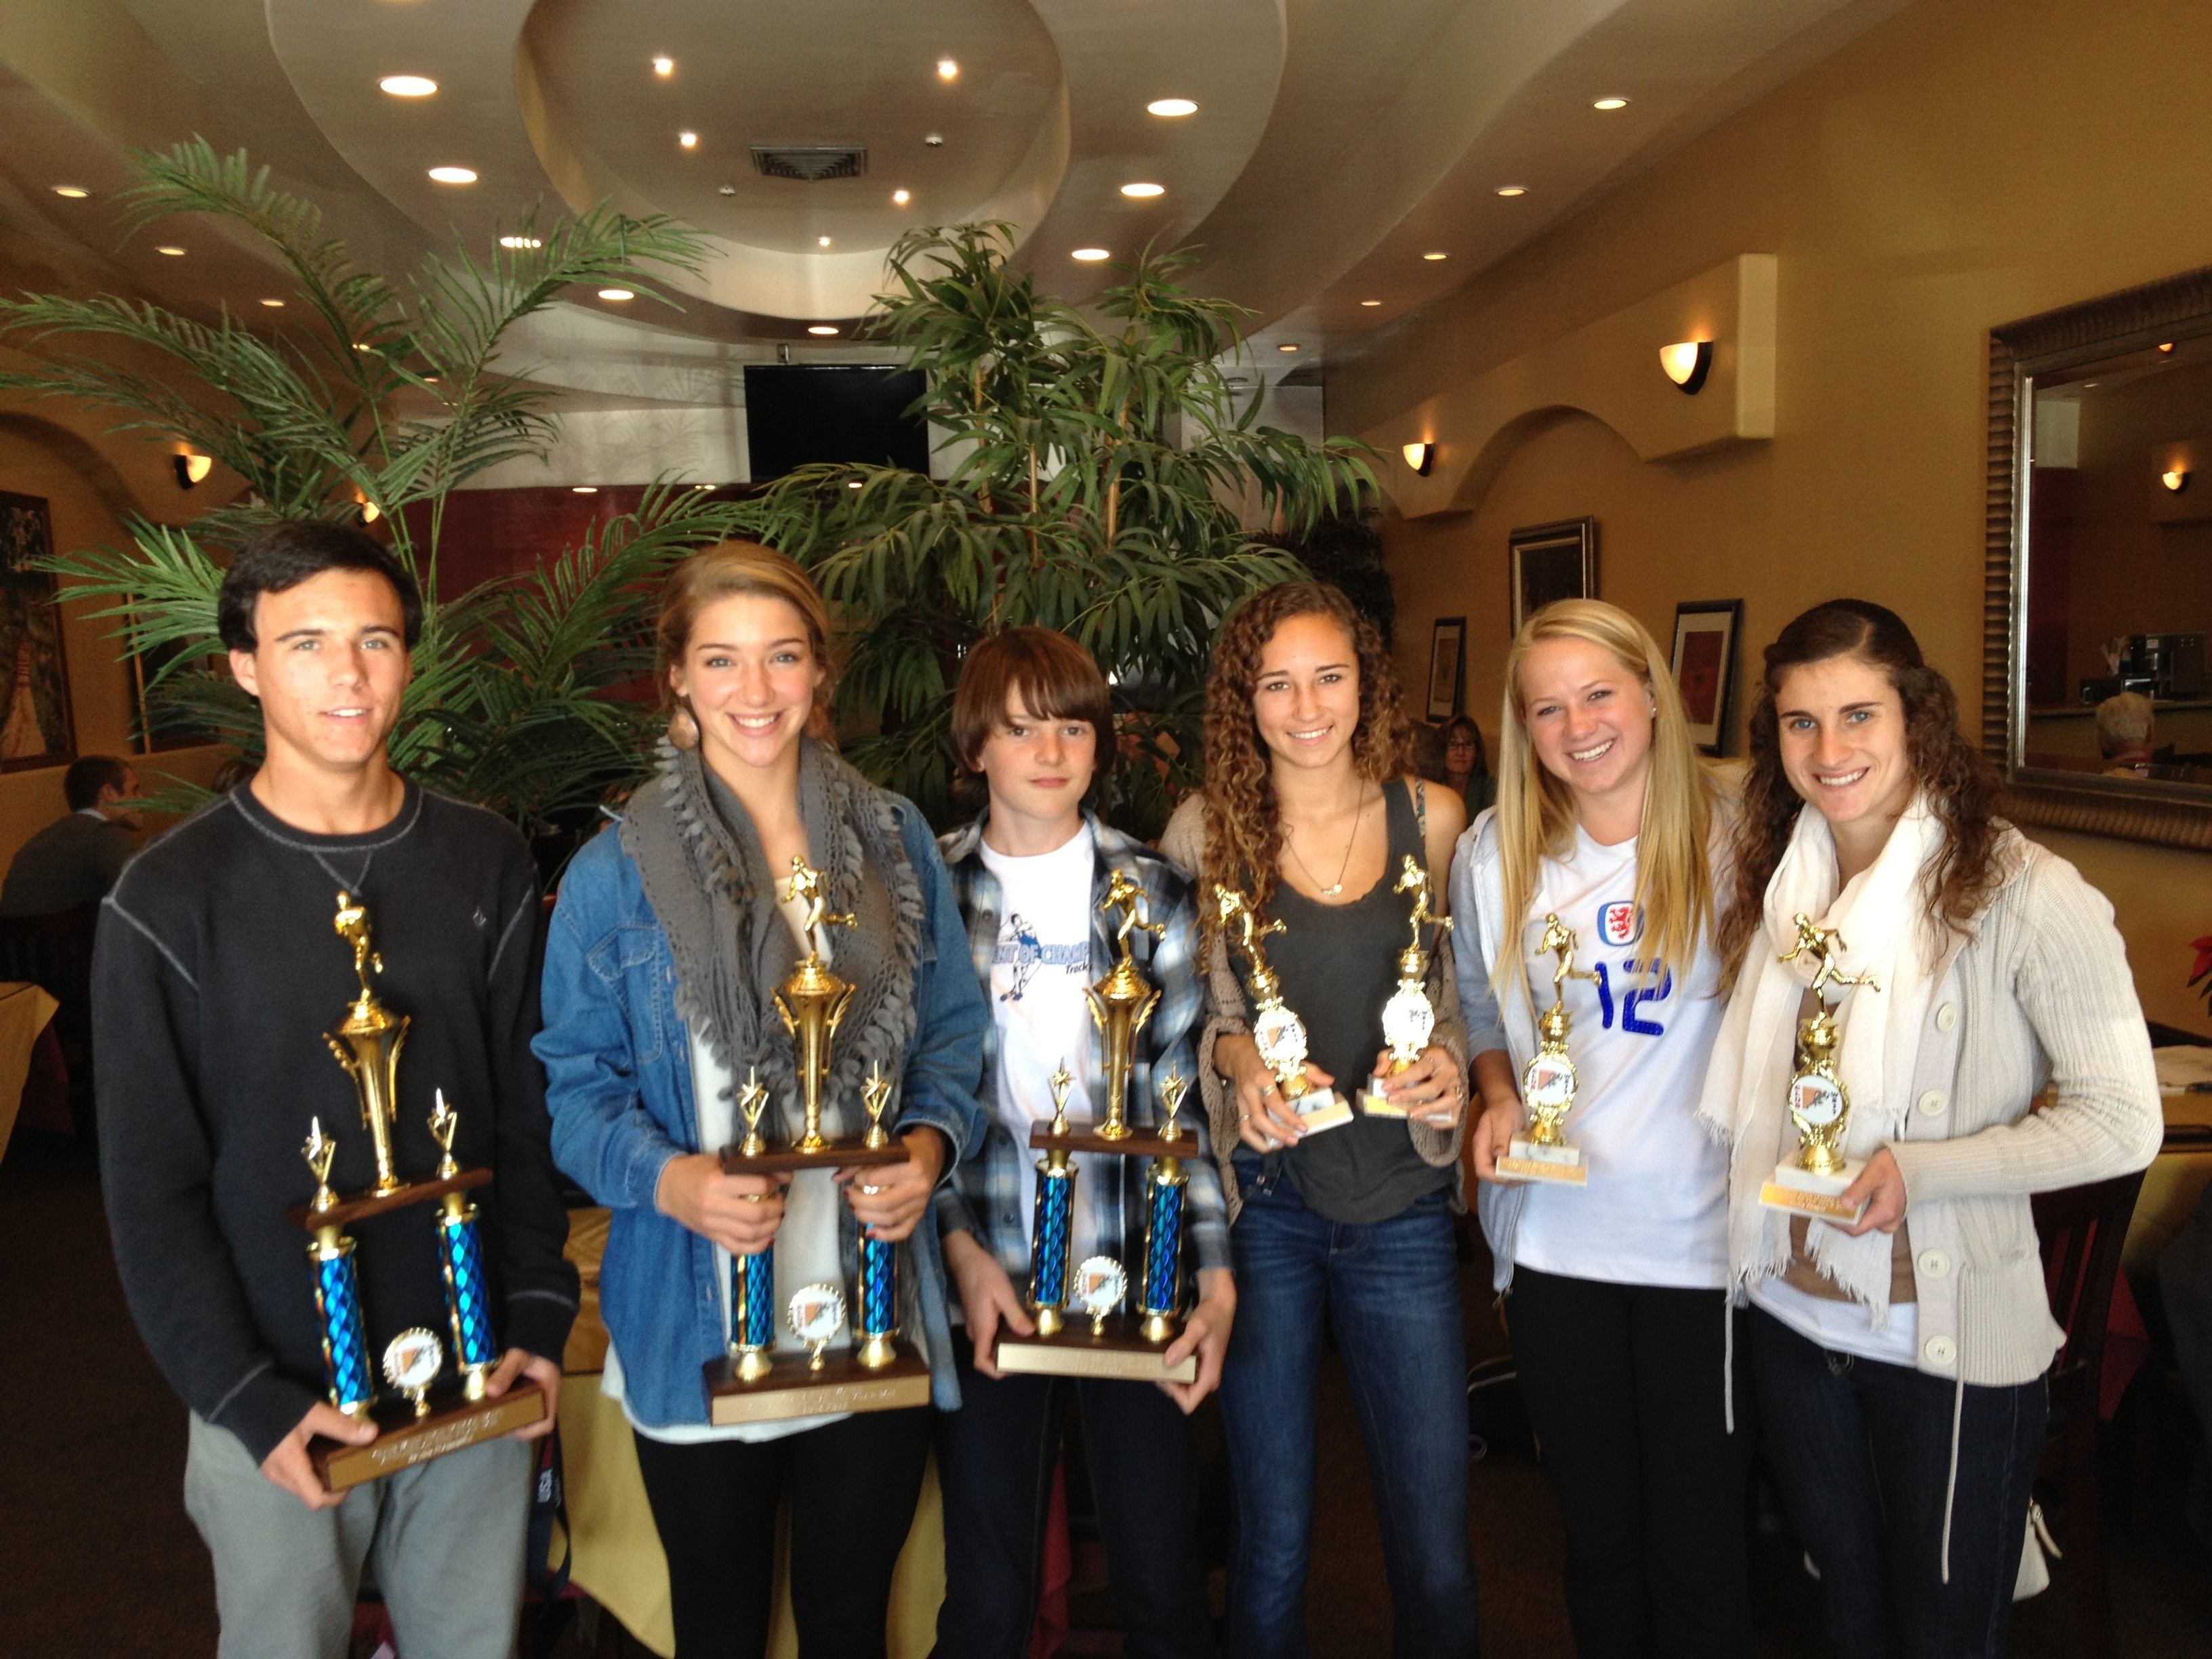 Recipients of the Club West High School and Junior High School Athlete of the Year Awards: From left, Bryan Hernandez (Dos Pueblos), Natalie Klapp (Goleta Valley), Jack Randmaa (La Colina), Hannah McDaniel (San Marcos, Cal Poly), Kaylin Koopmans (San Marcos), and Elysia Hodges (San Marcos, Westmont). Not pictured: Marie Brashears (San Marcos, UC Irvine).